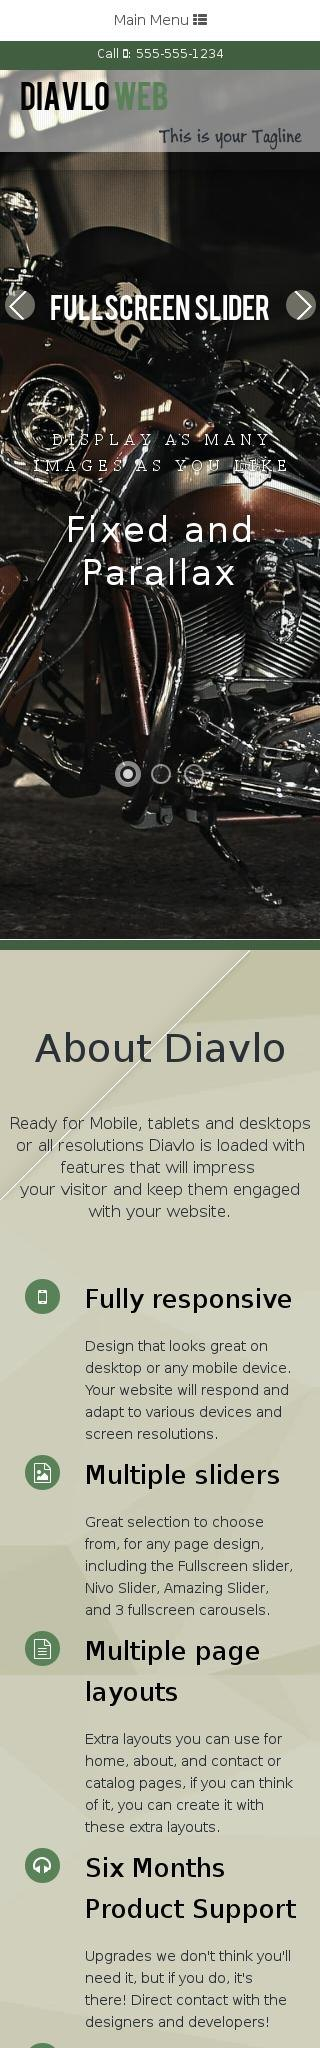 Mobile: Motorcycle Web Template